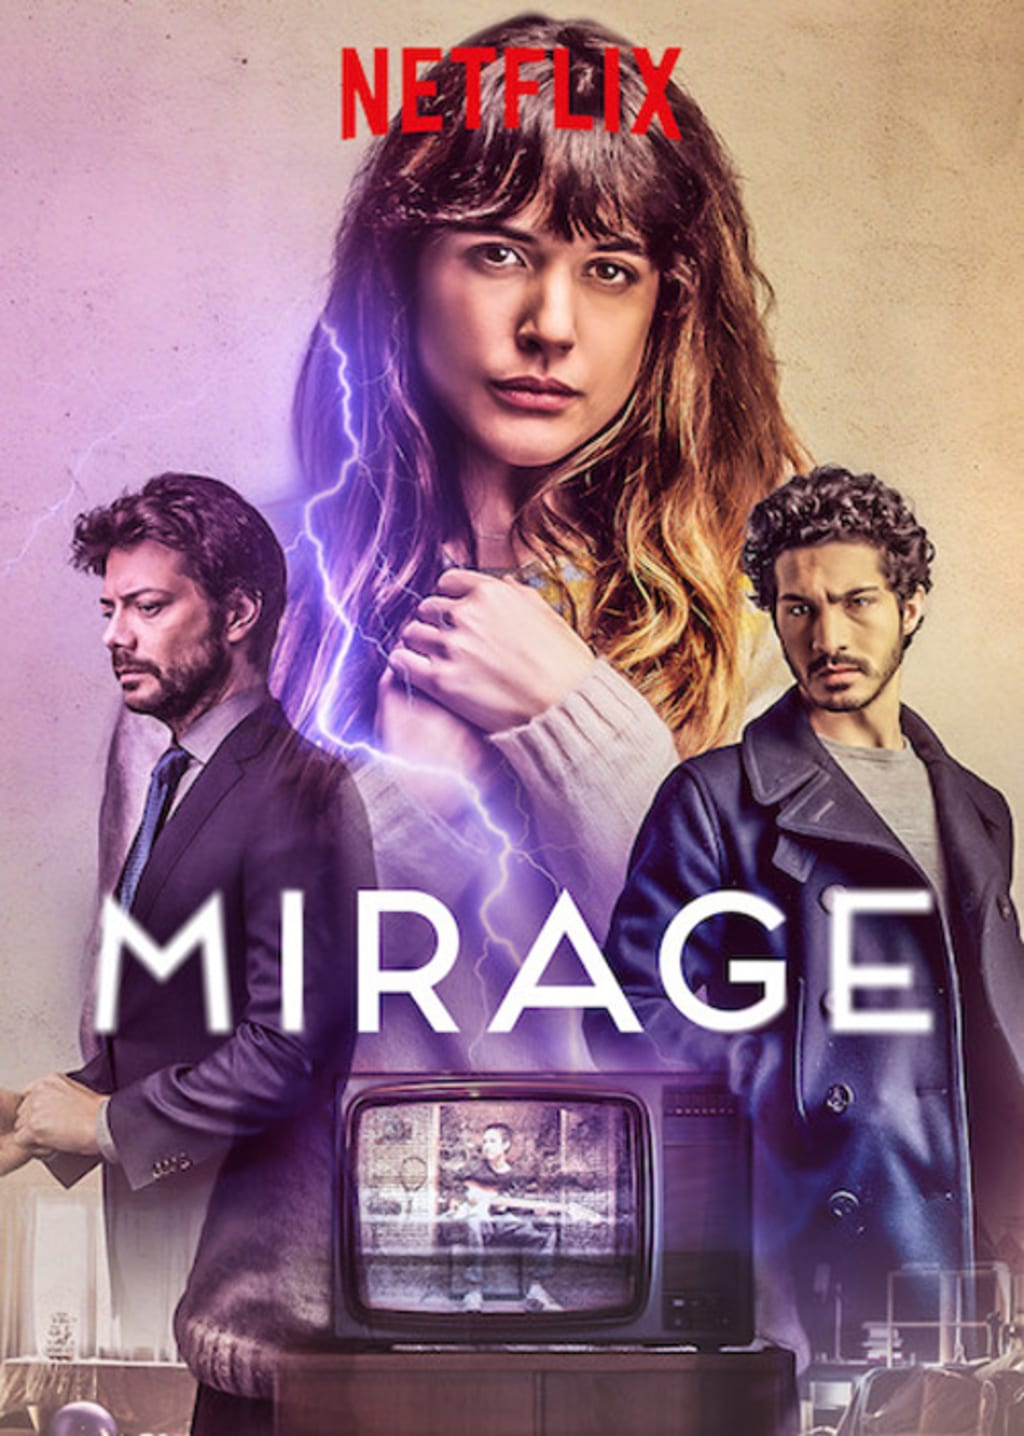 Review of 'Mirage'